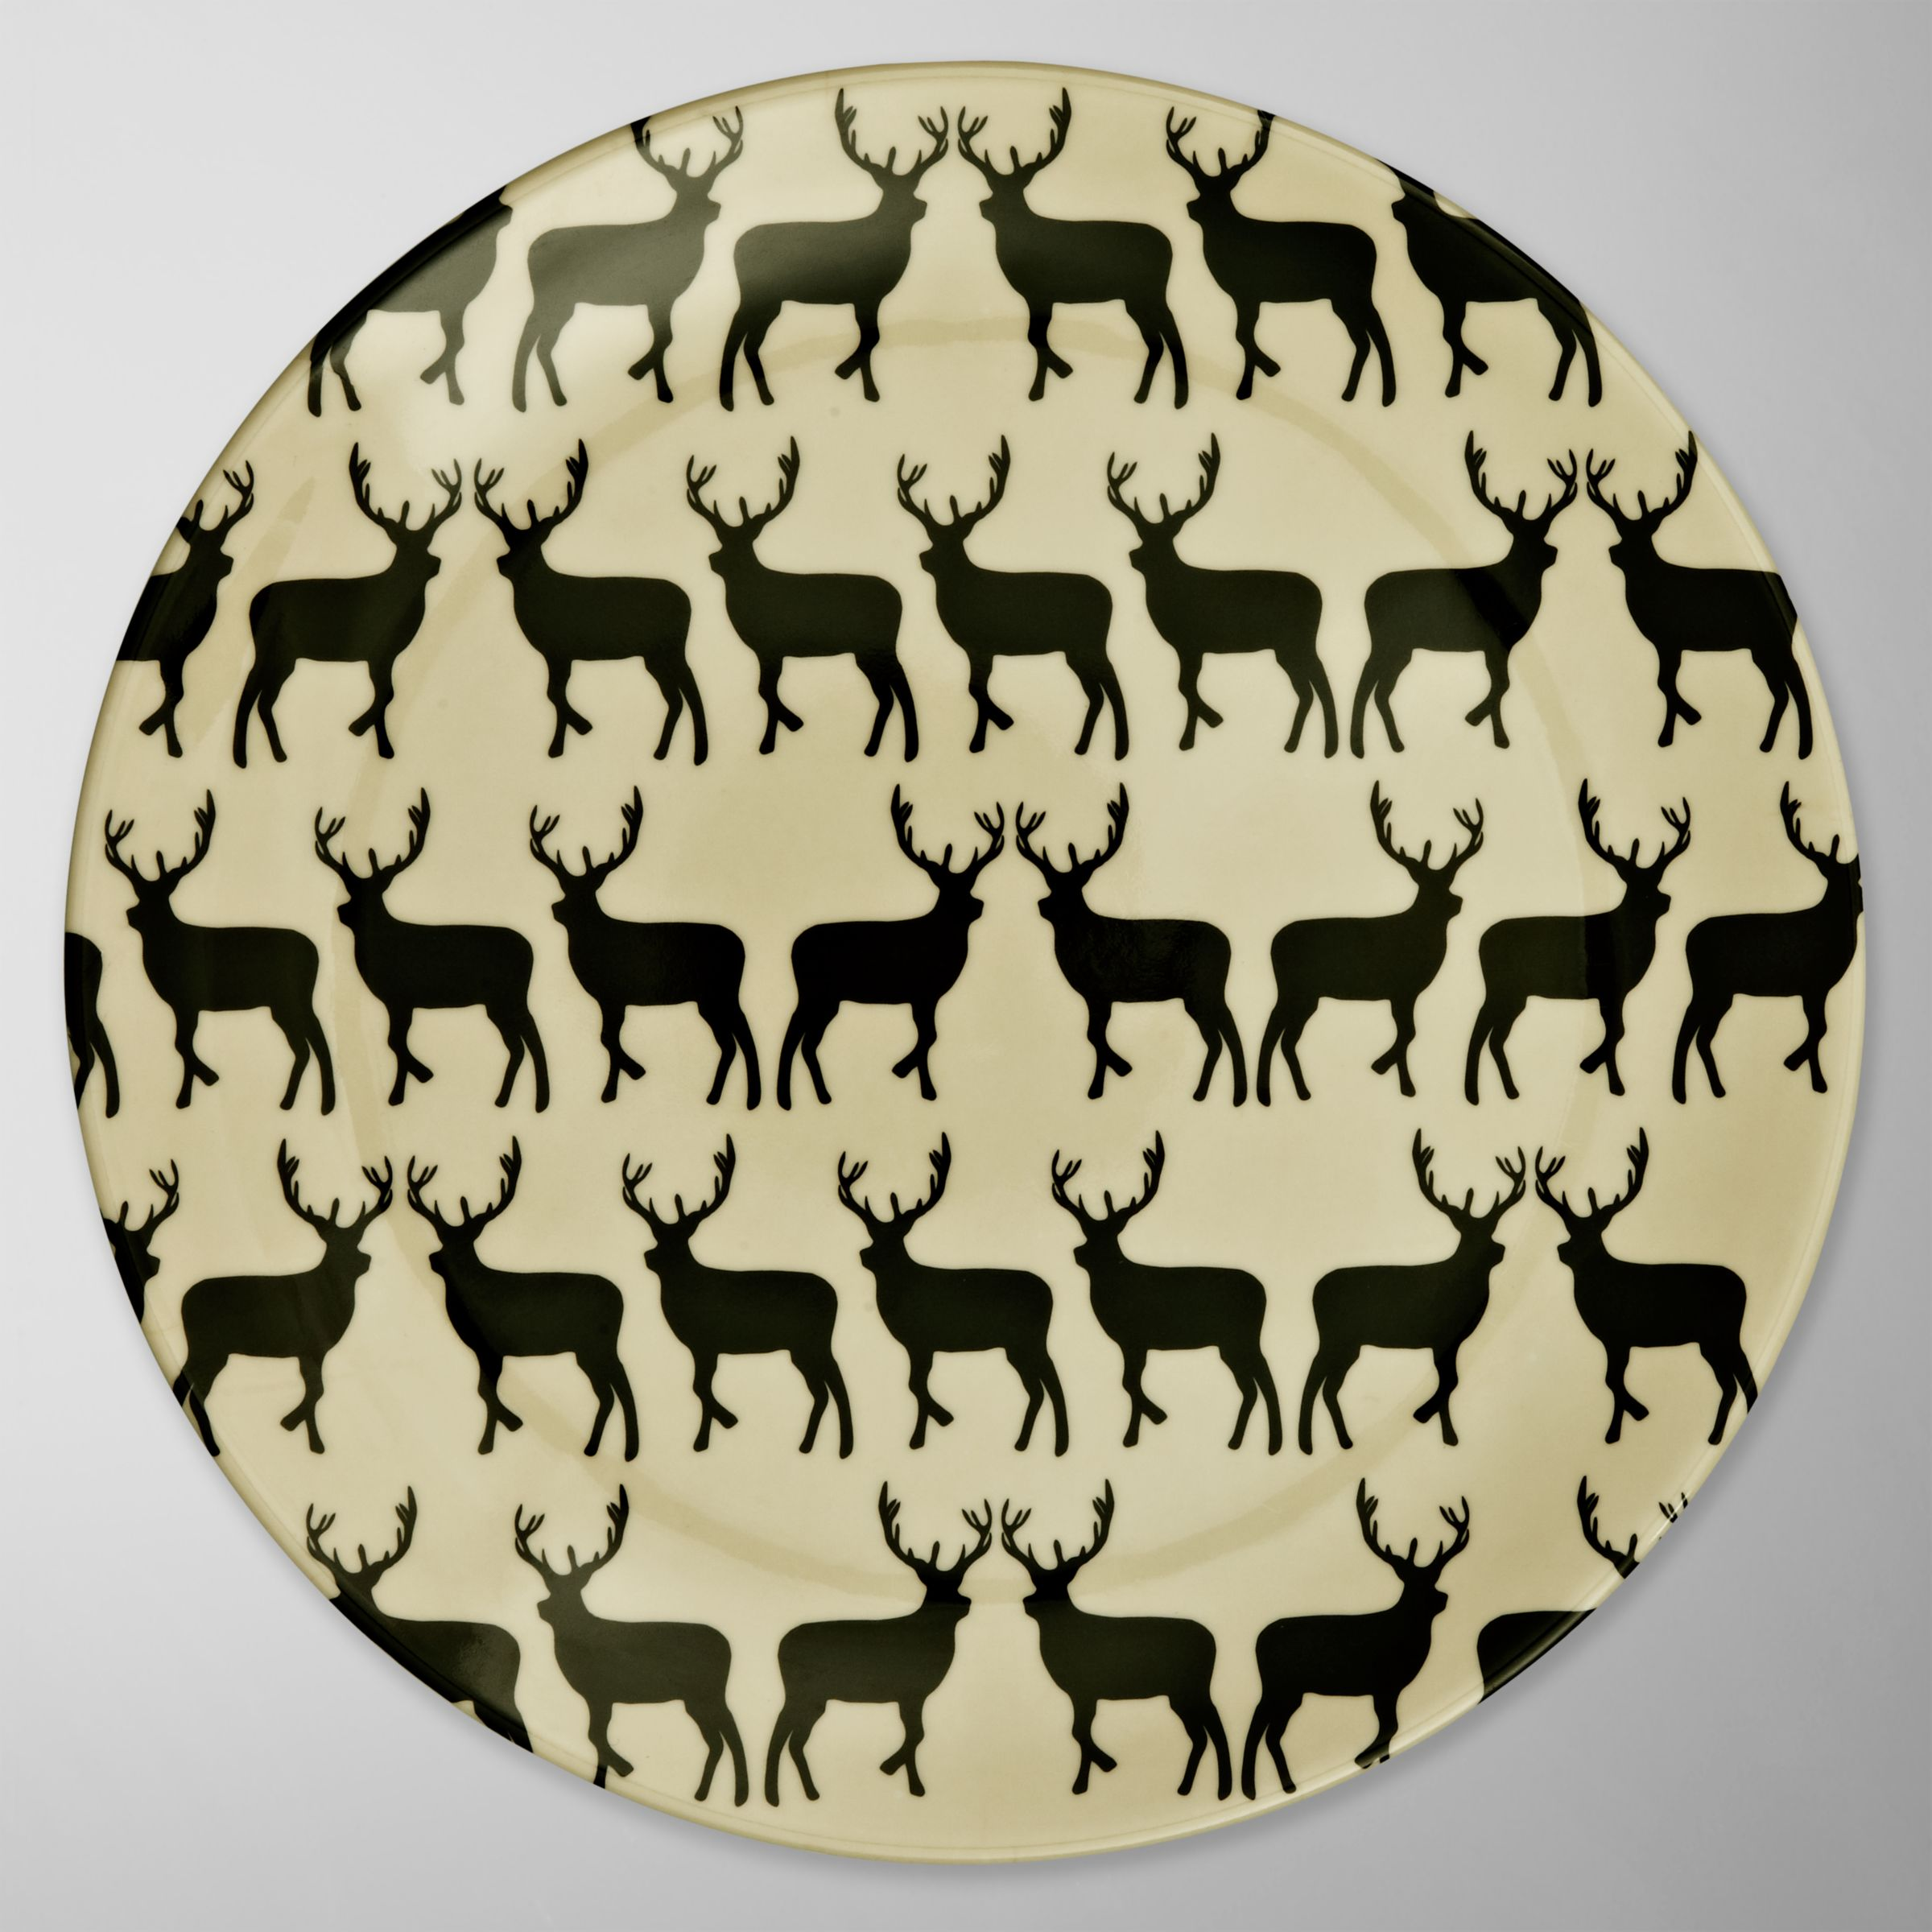 Anorak Kissing Stags Plate